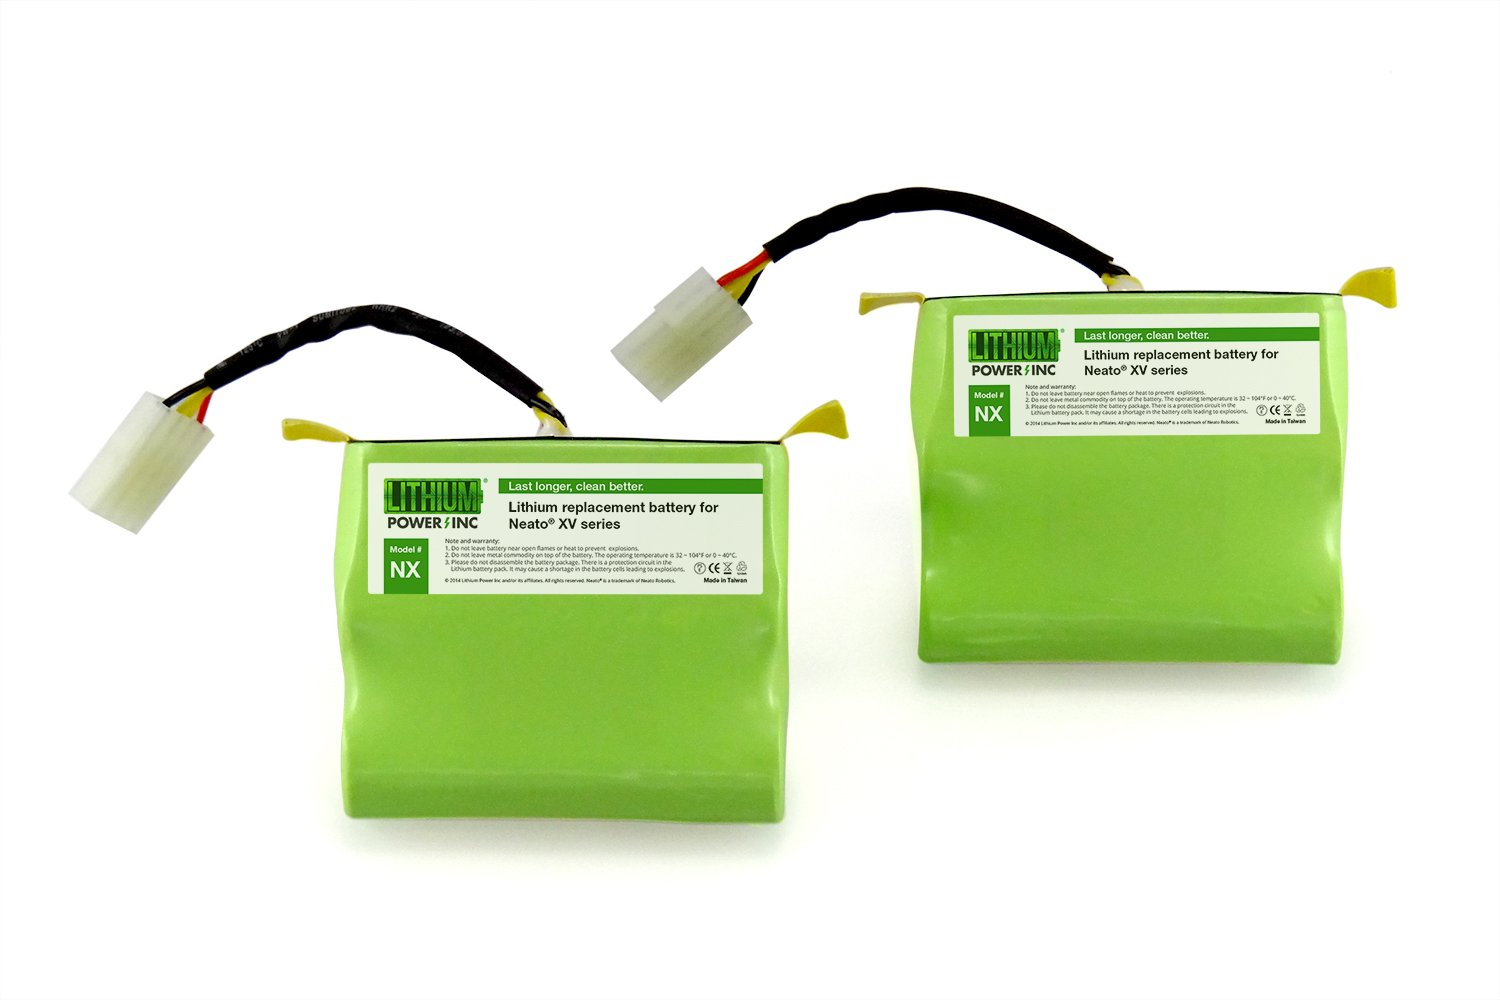 Lithium Neato XV Series Replacement Battery for Neato XV-11, XV-12, XV-14, XV-15, XV-21, XV-25, XV Essential, XV Signature and XV Signature Pro, 4400mAH (Set of 2) - UL&CE Certified Battery Component by Lithium Power